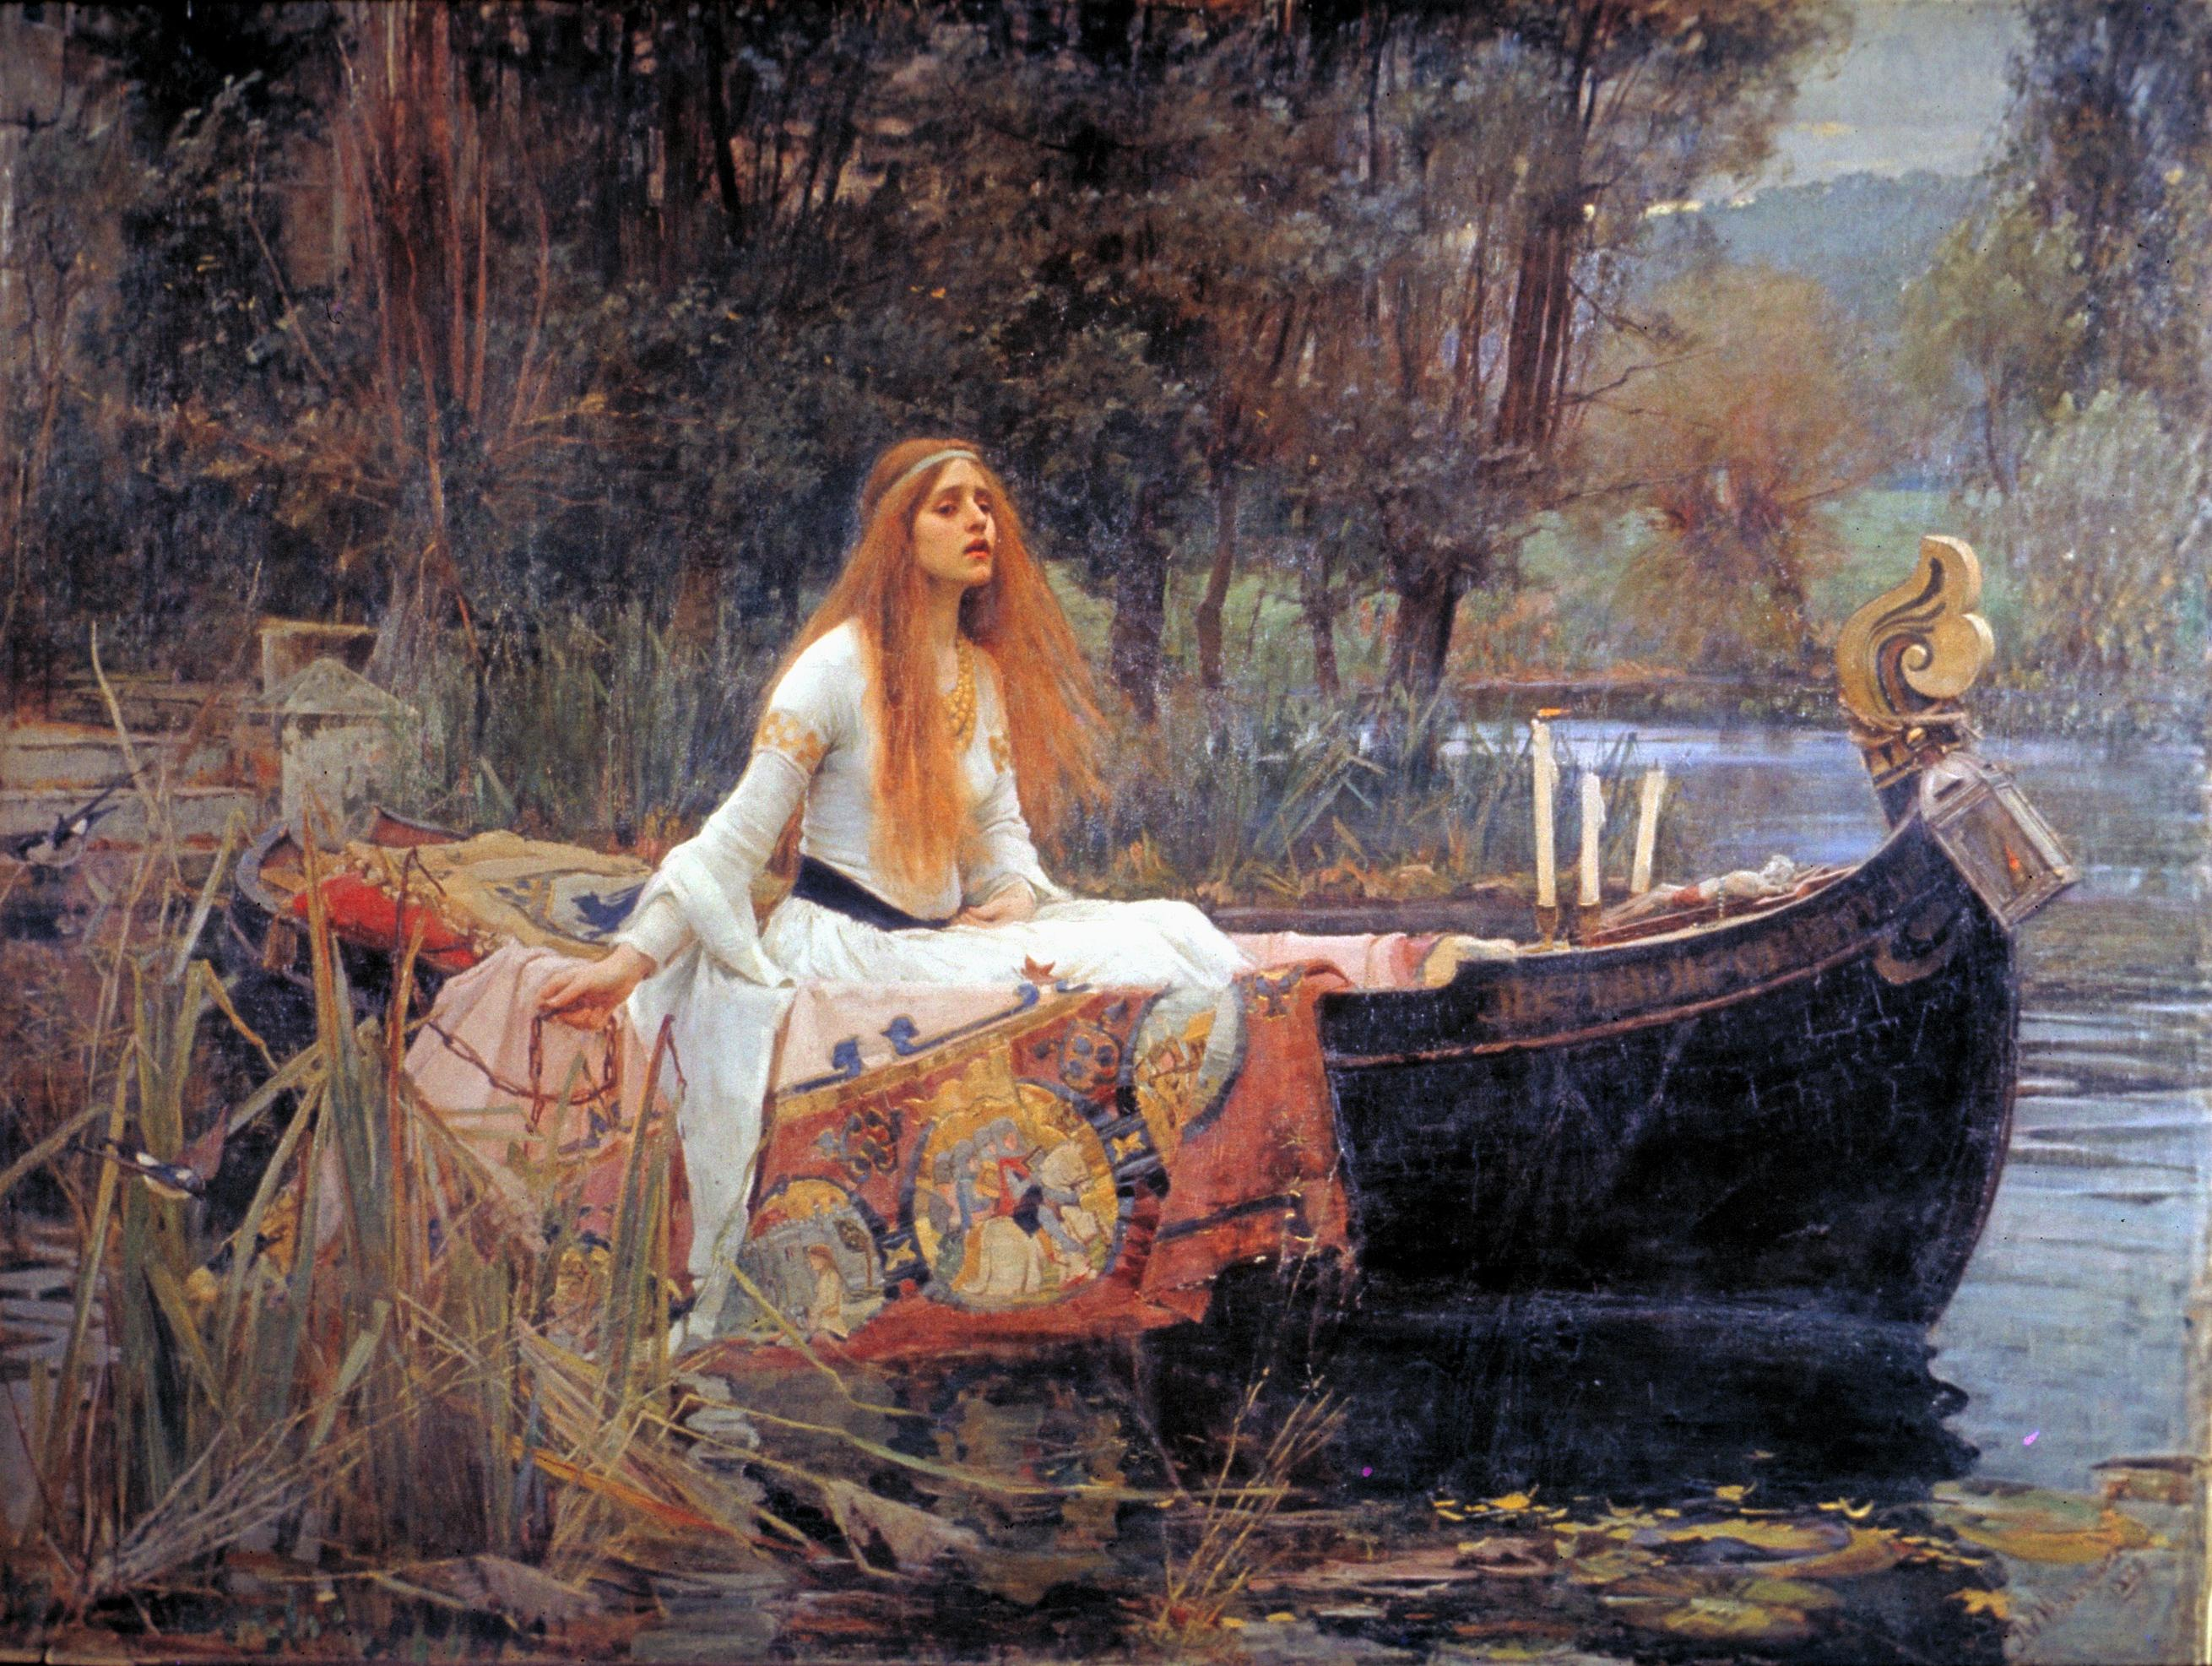 Art history: The Lady of Shalott by John William Waterhouse